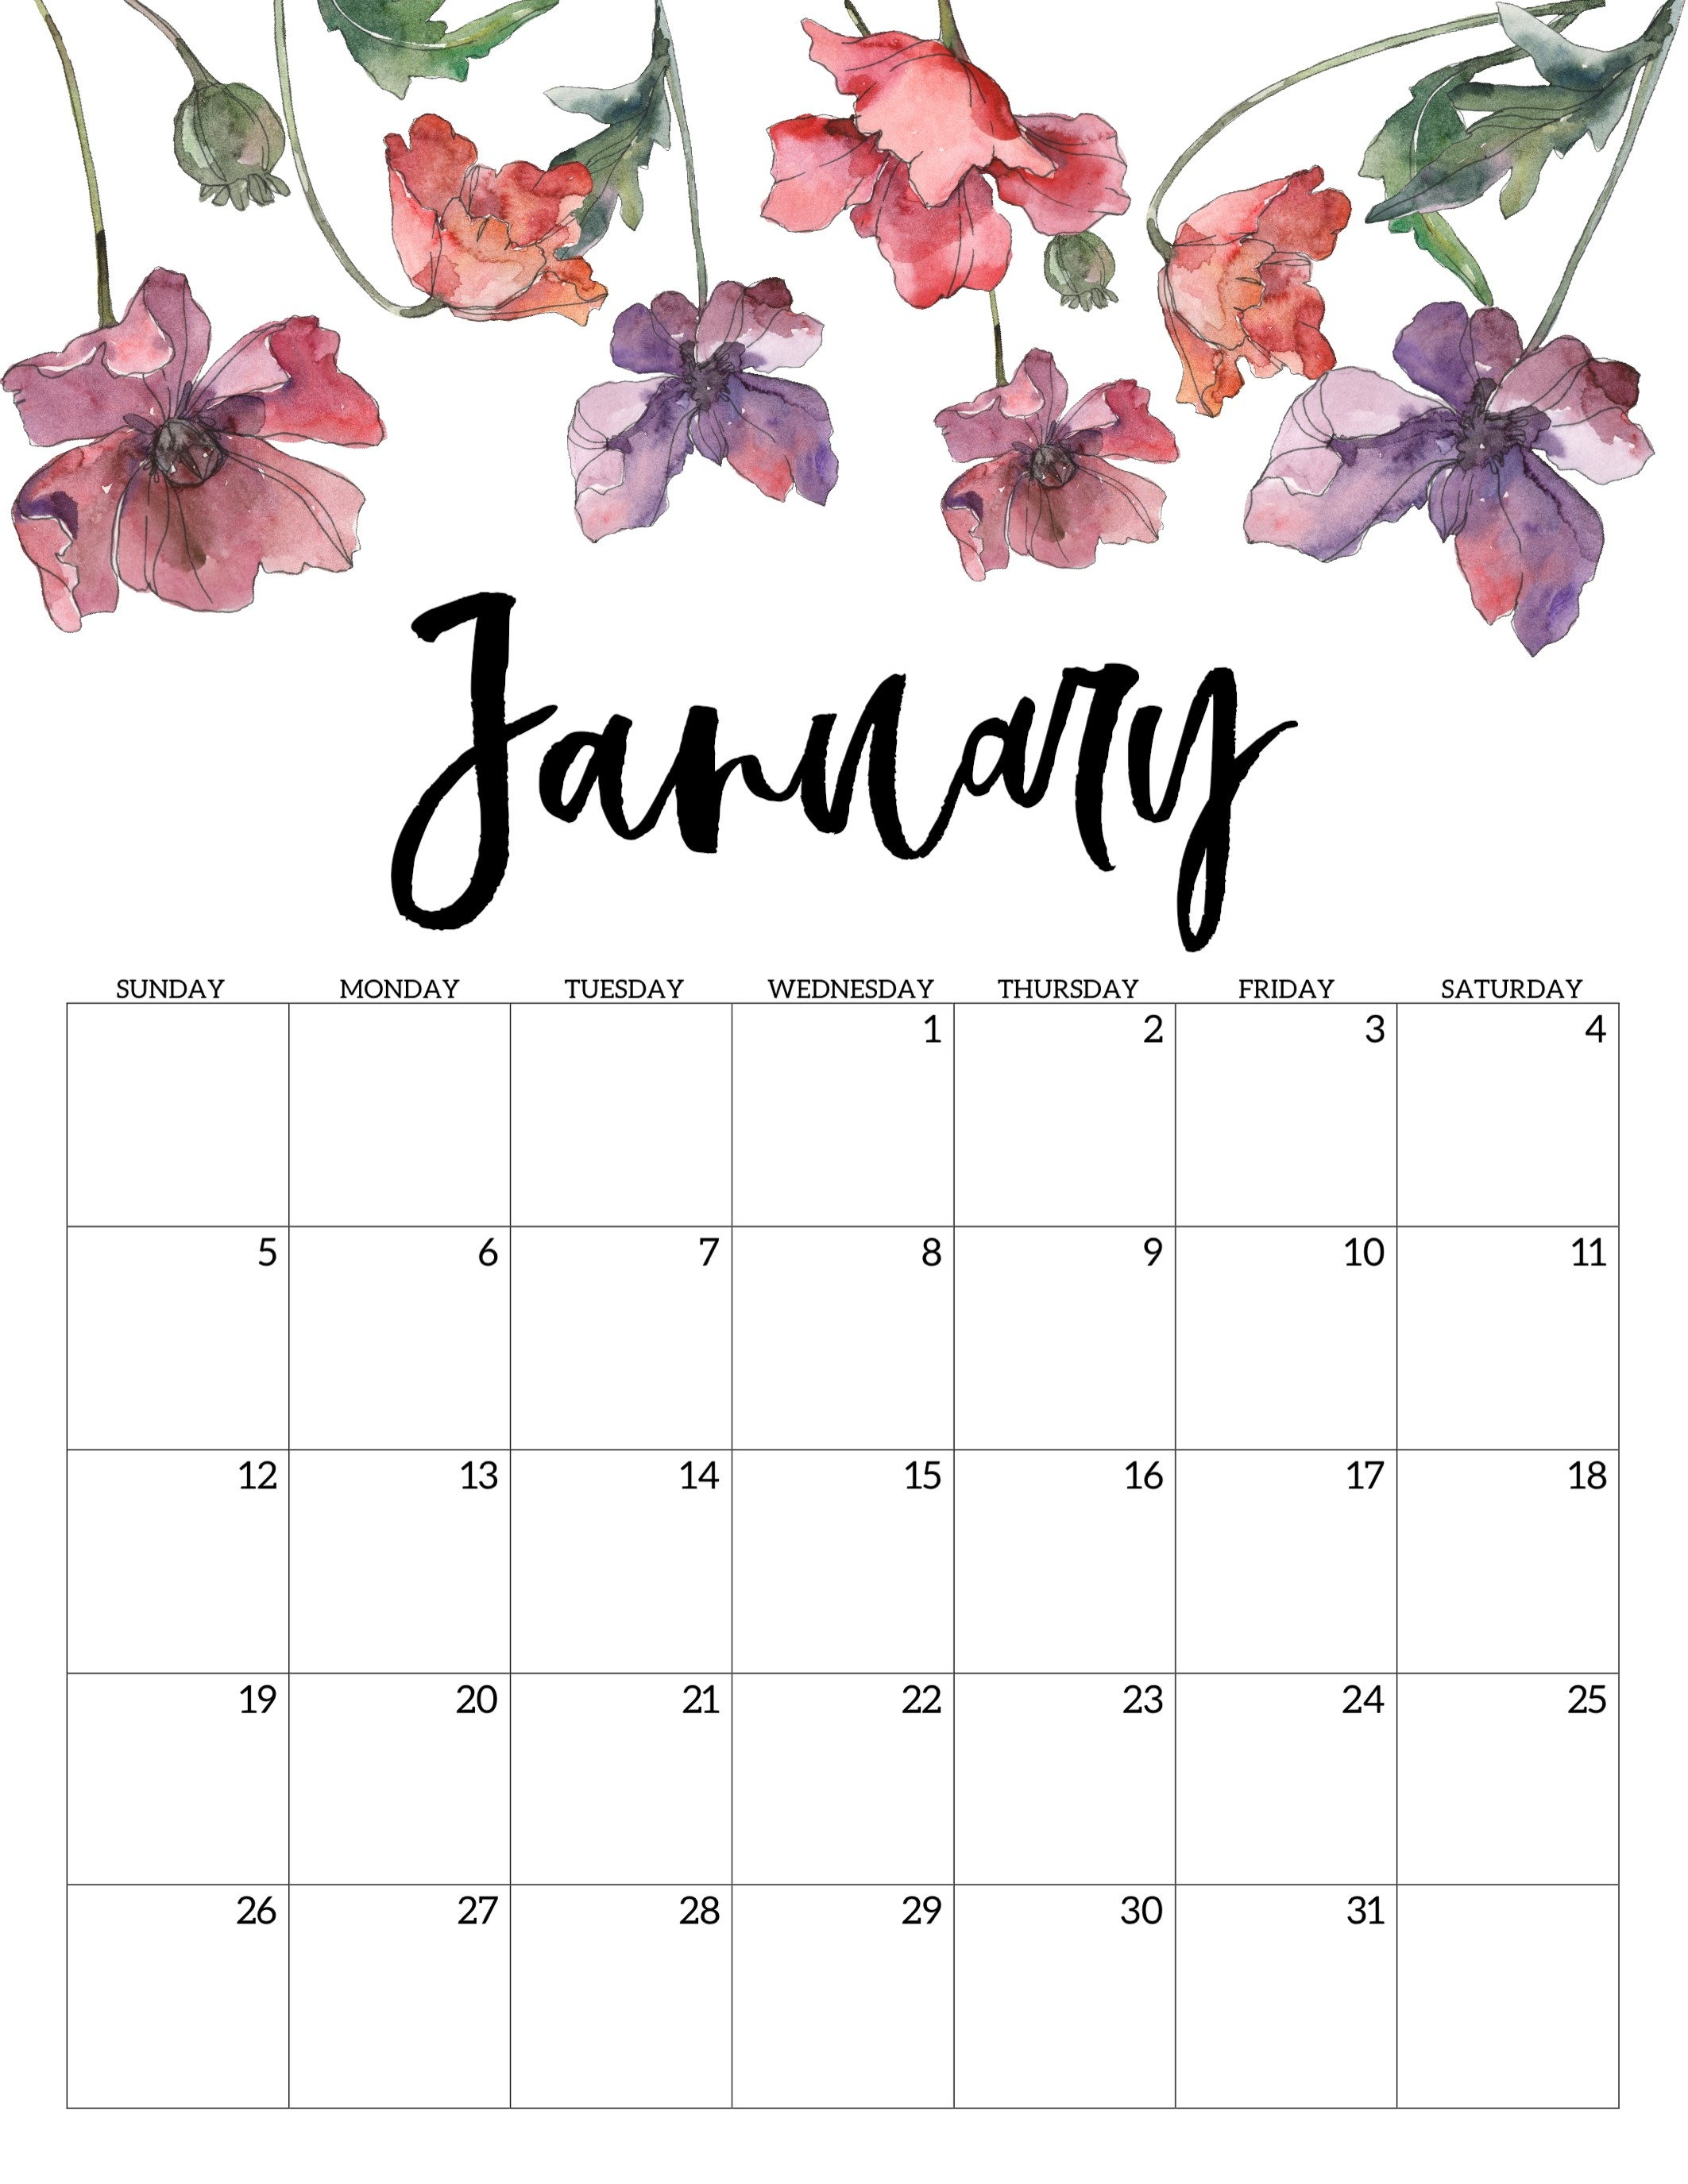 2020 Free Printable Calendar - Floral - Paper Trail Design  Girly Monthly Calendar Printable 2020